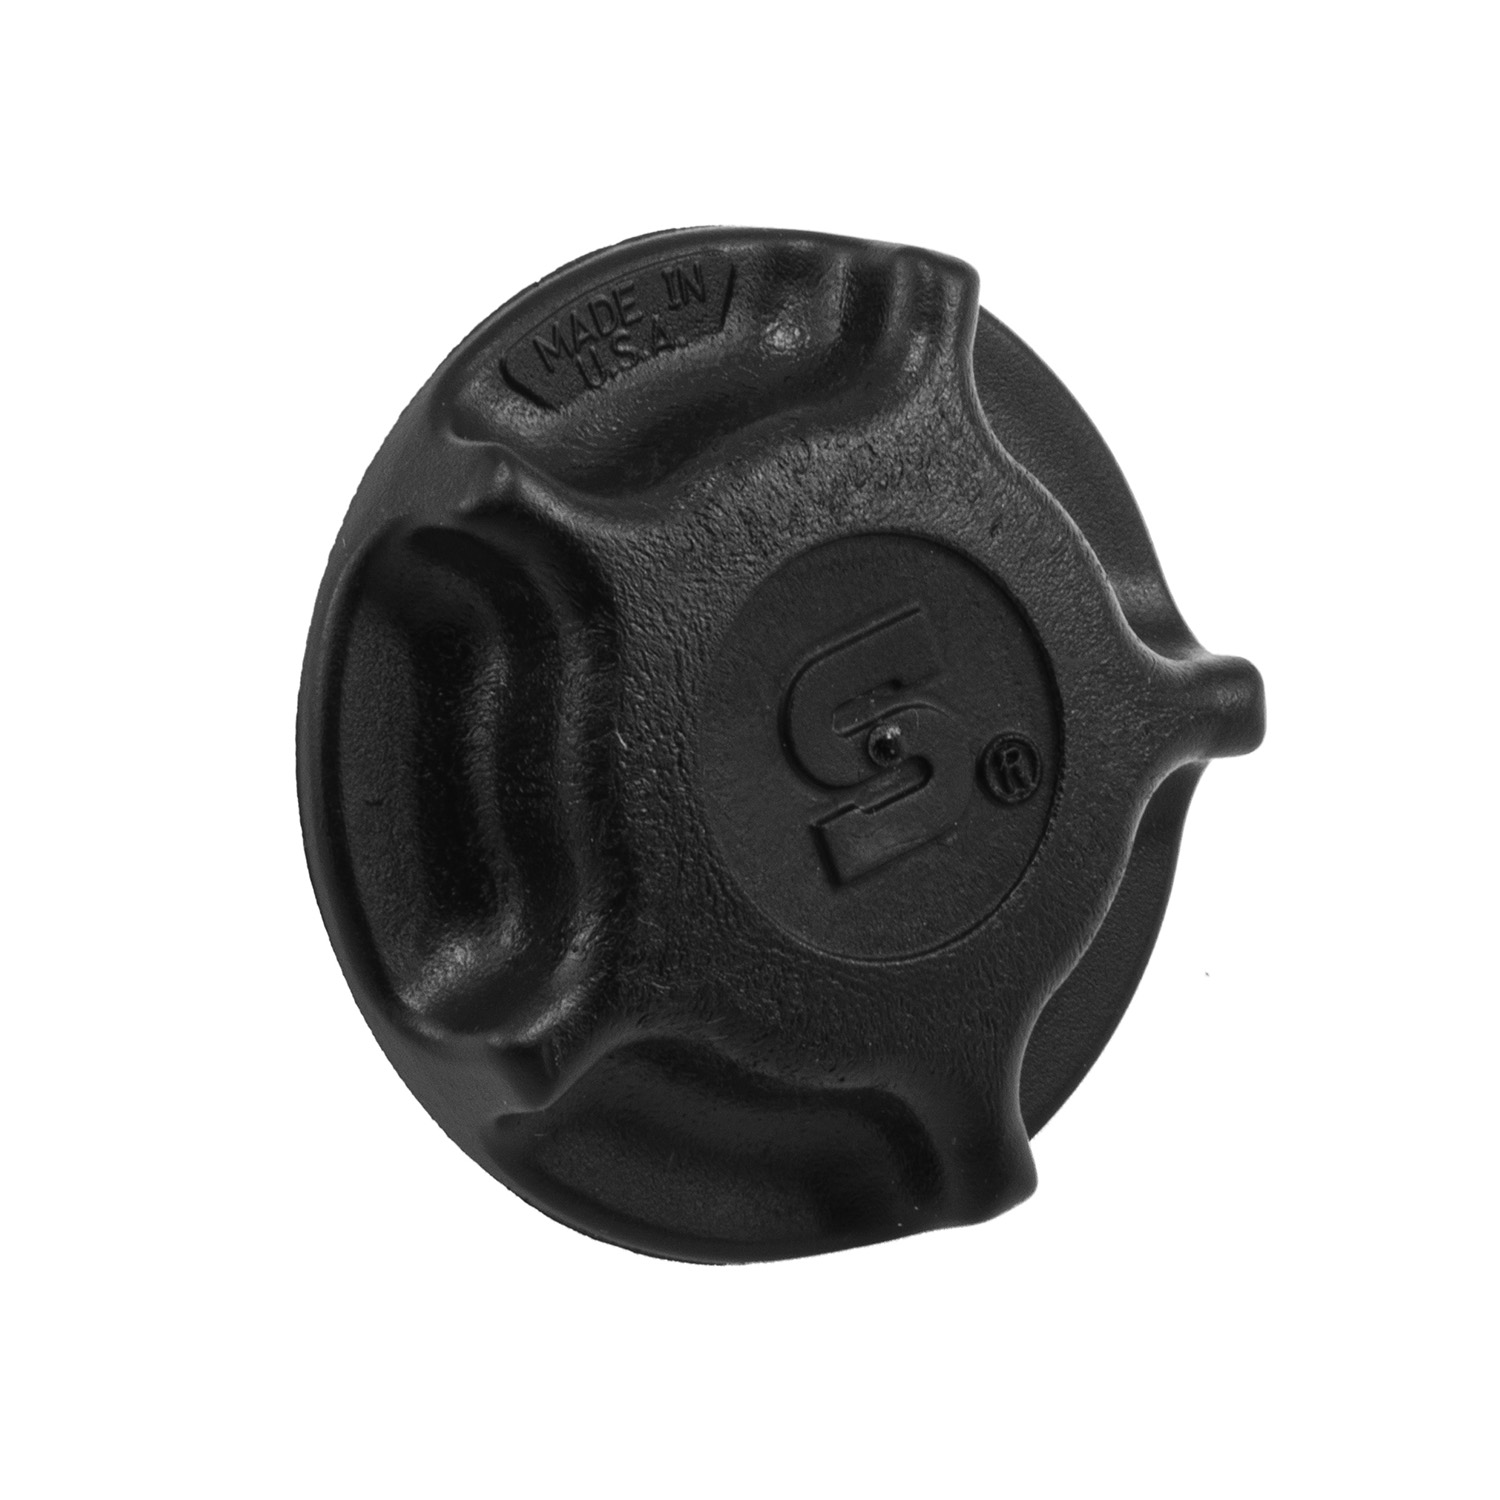 Oil Cap Diesel For 2007 To 2018 Jeep JK Wrangler 2002 To 2012 Liberty 17403.11